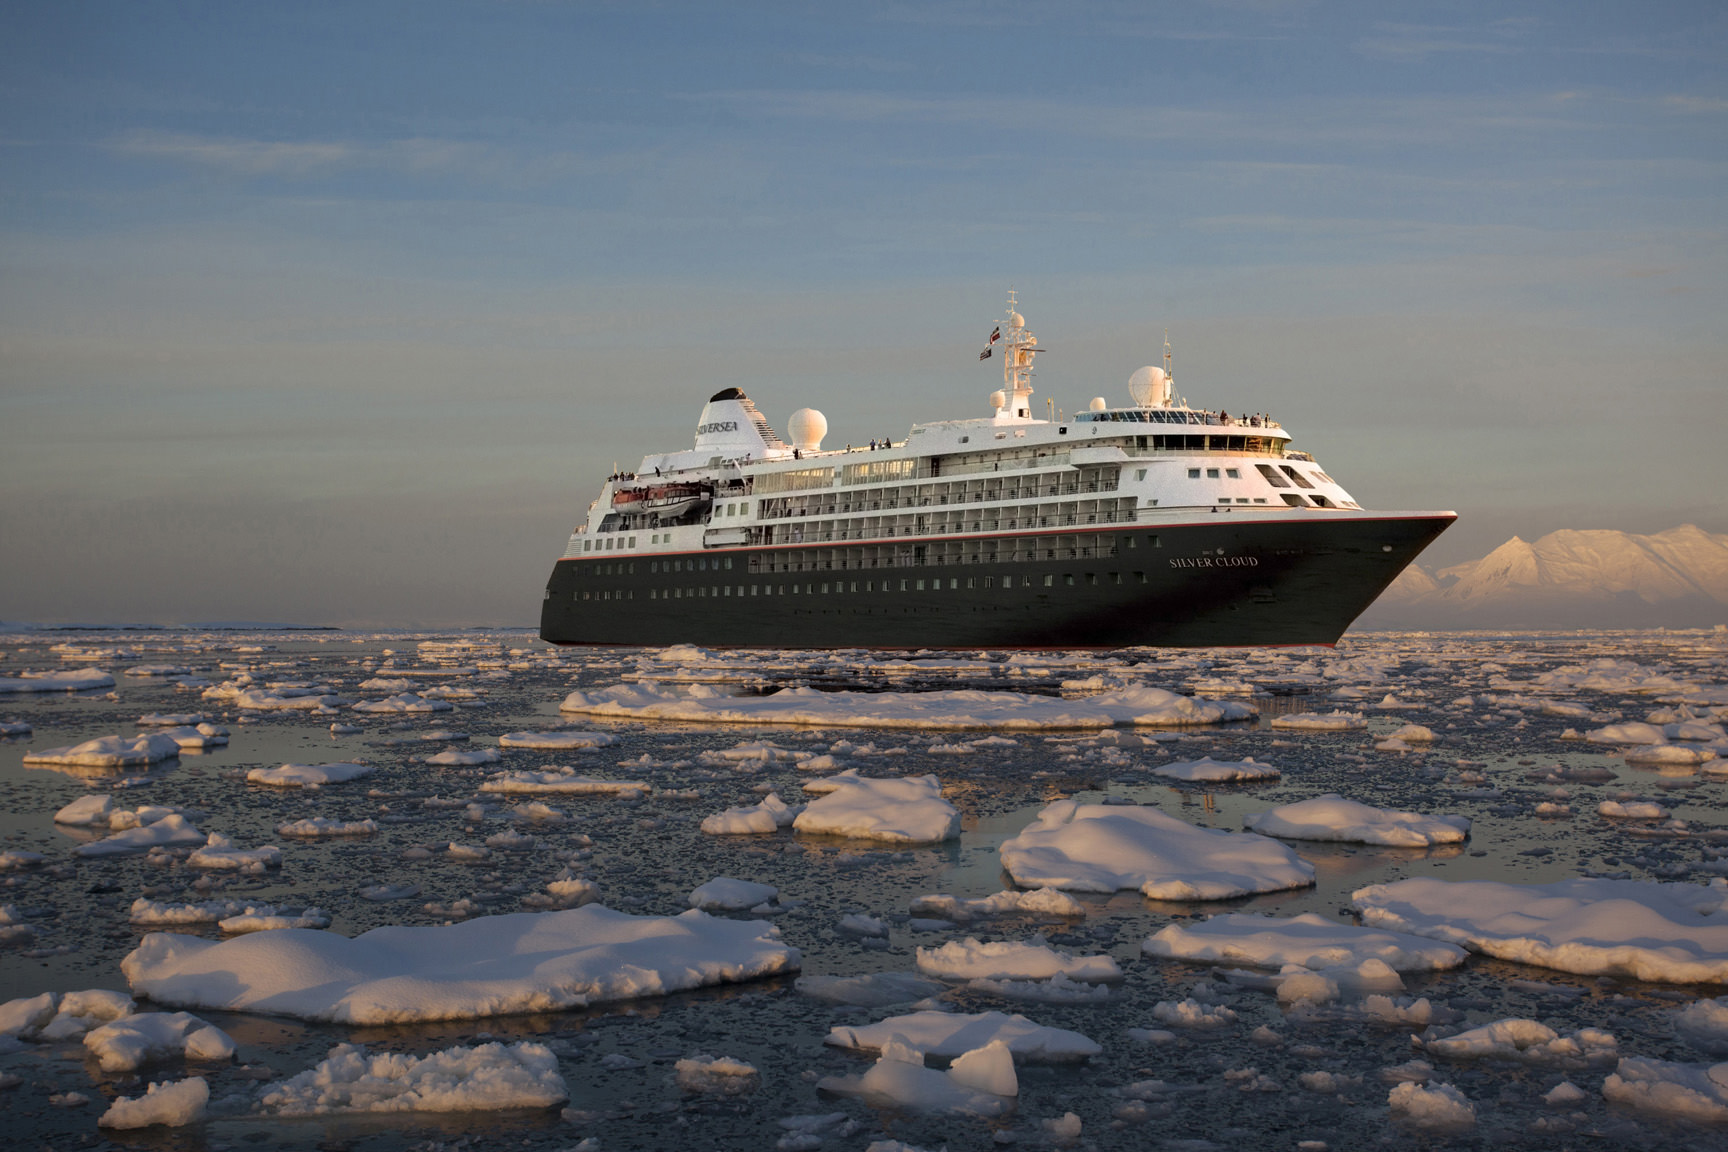 Silver Cloud as Expedition vessel. Luxury line Silversea has announced a full conversion of Silver Cloud into an ice-class expedition ship in 2017. Rendering courtesy of Silversea